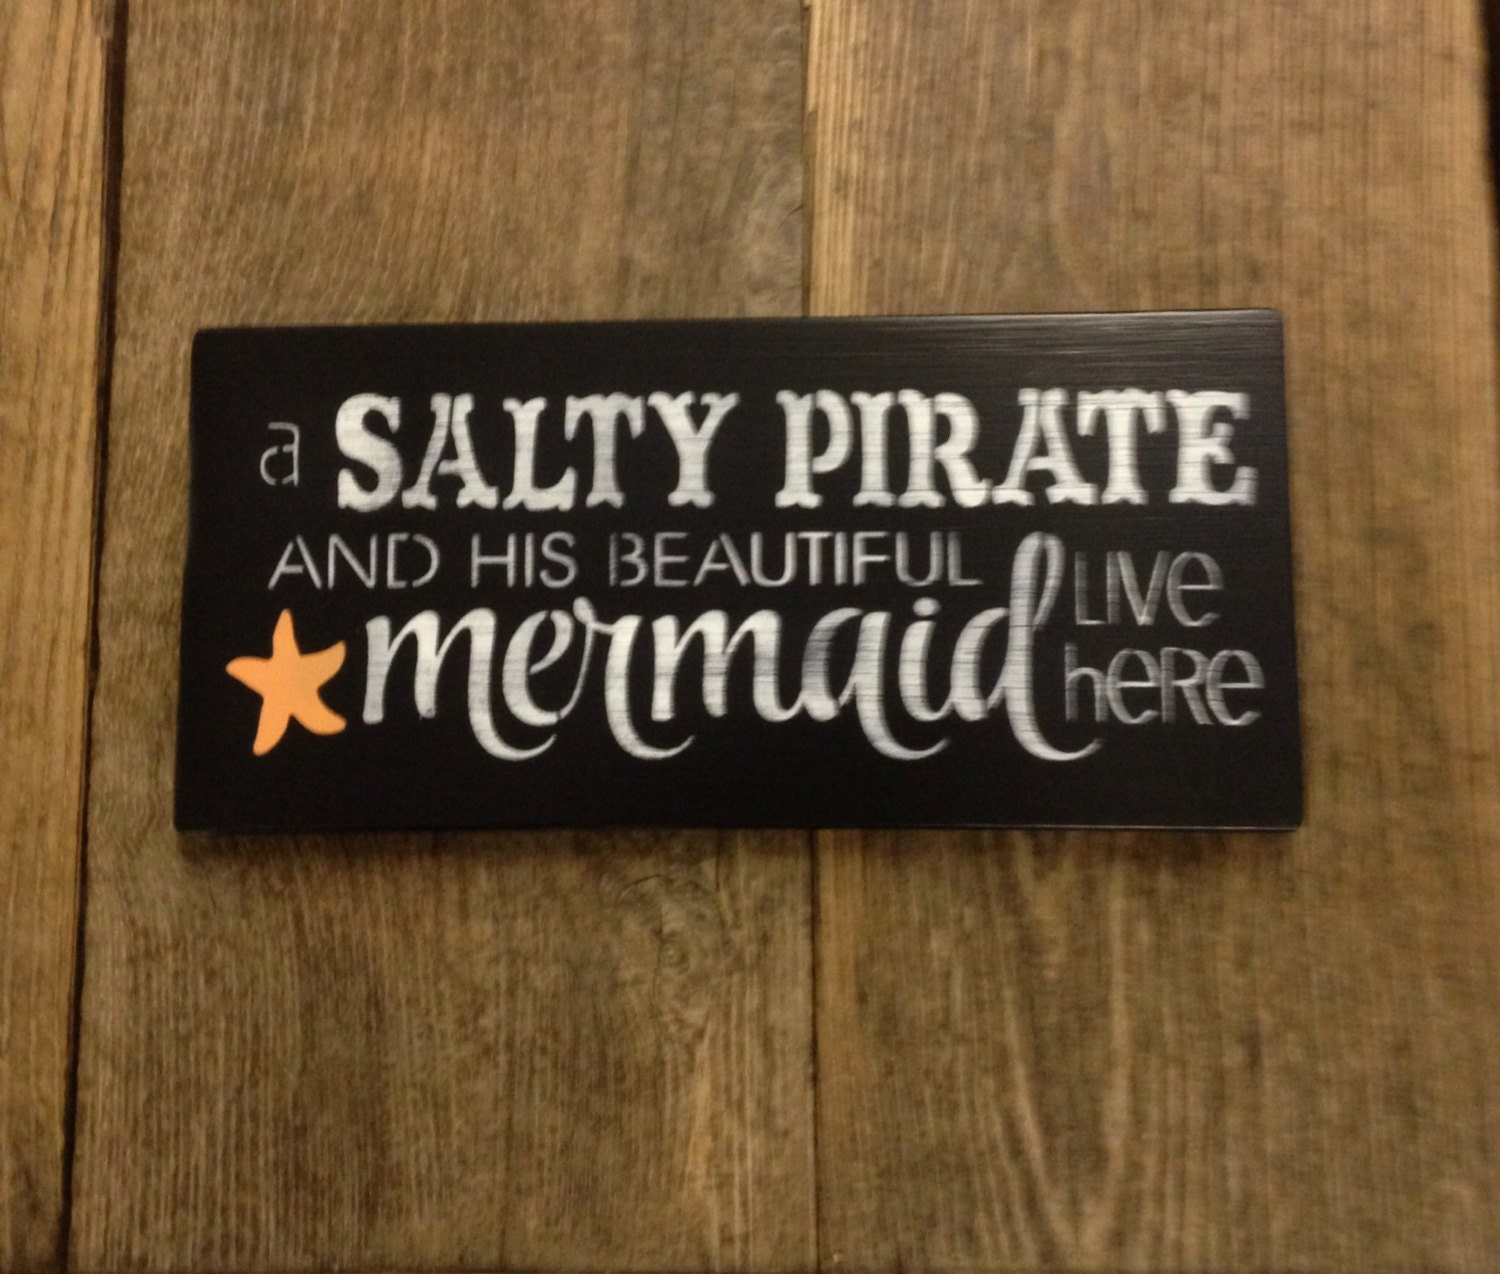 Salty pirate mermaid sign wooden beach decor sign by farmhouse896